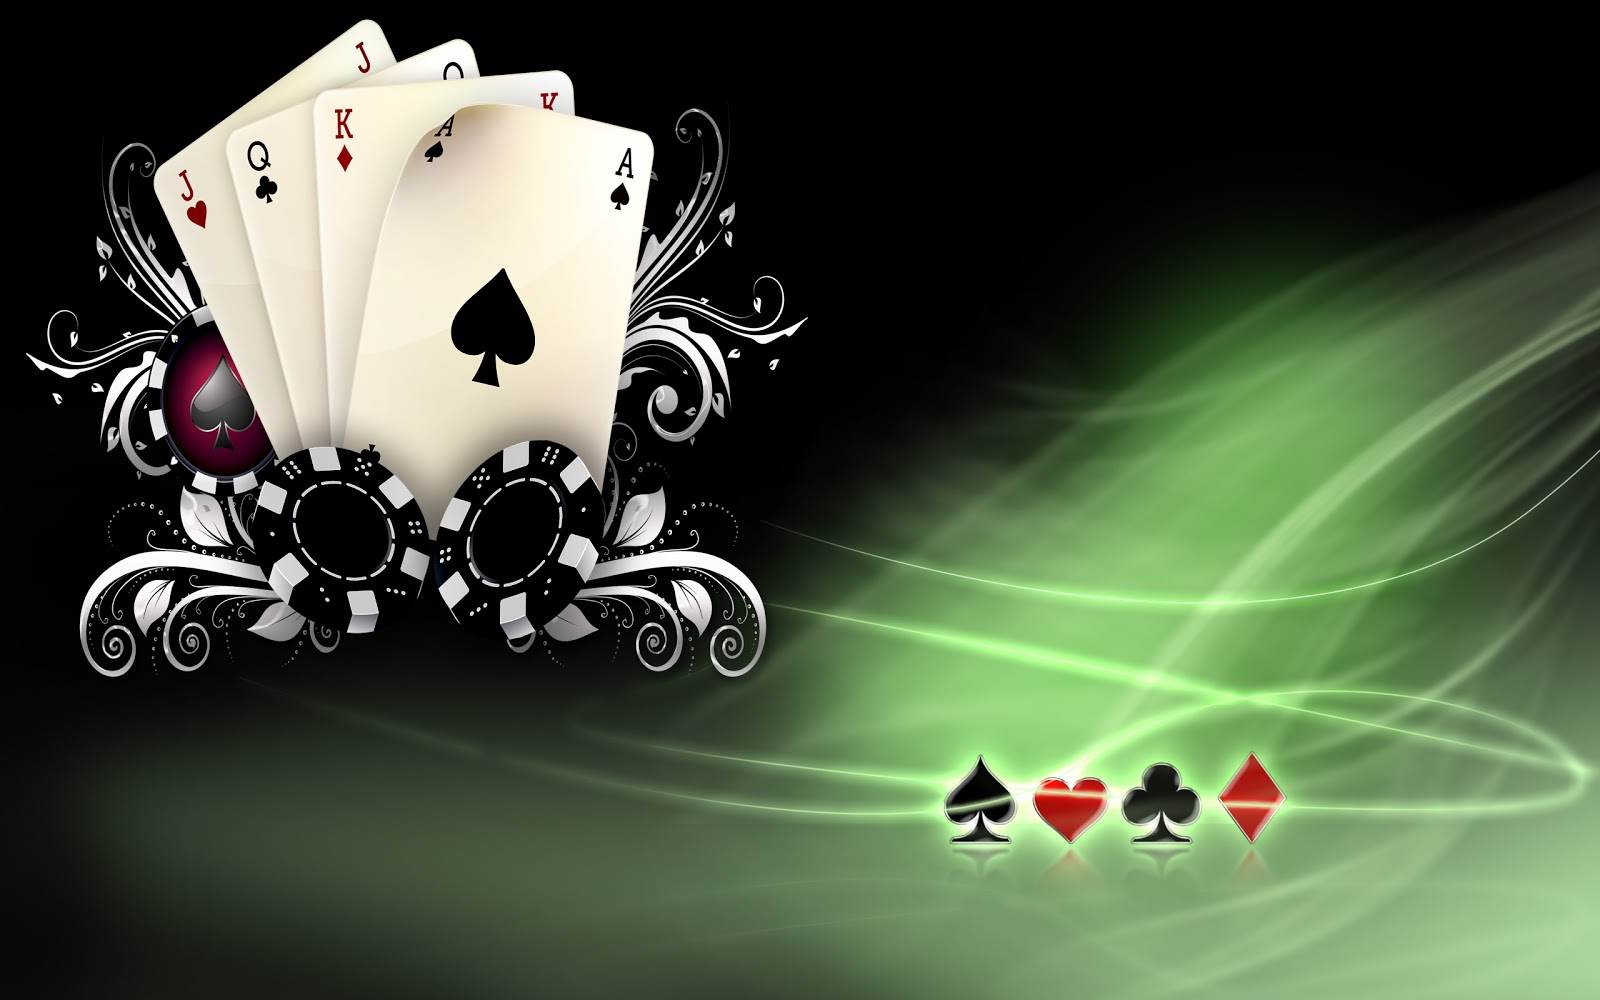 Blackjack free download for android